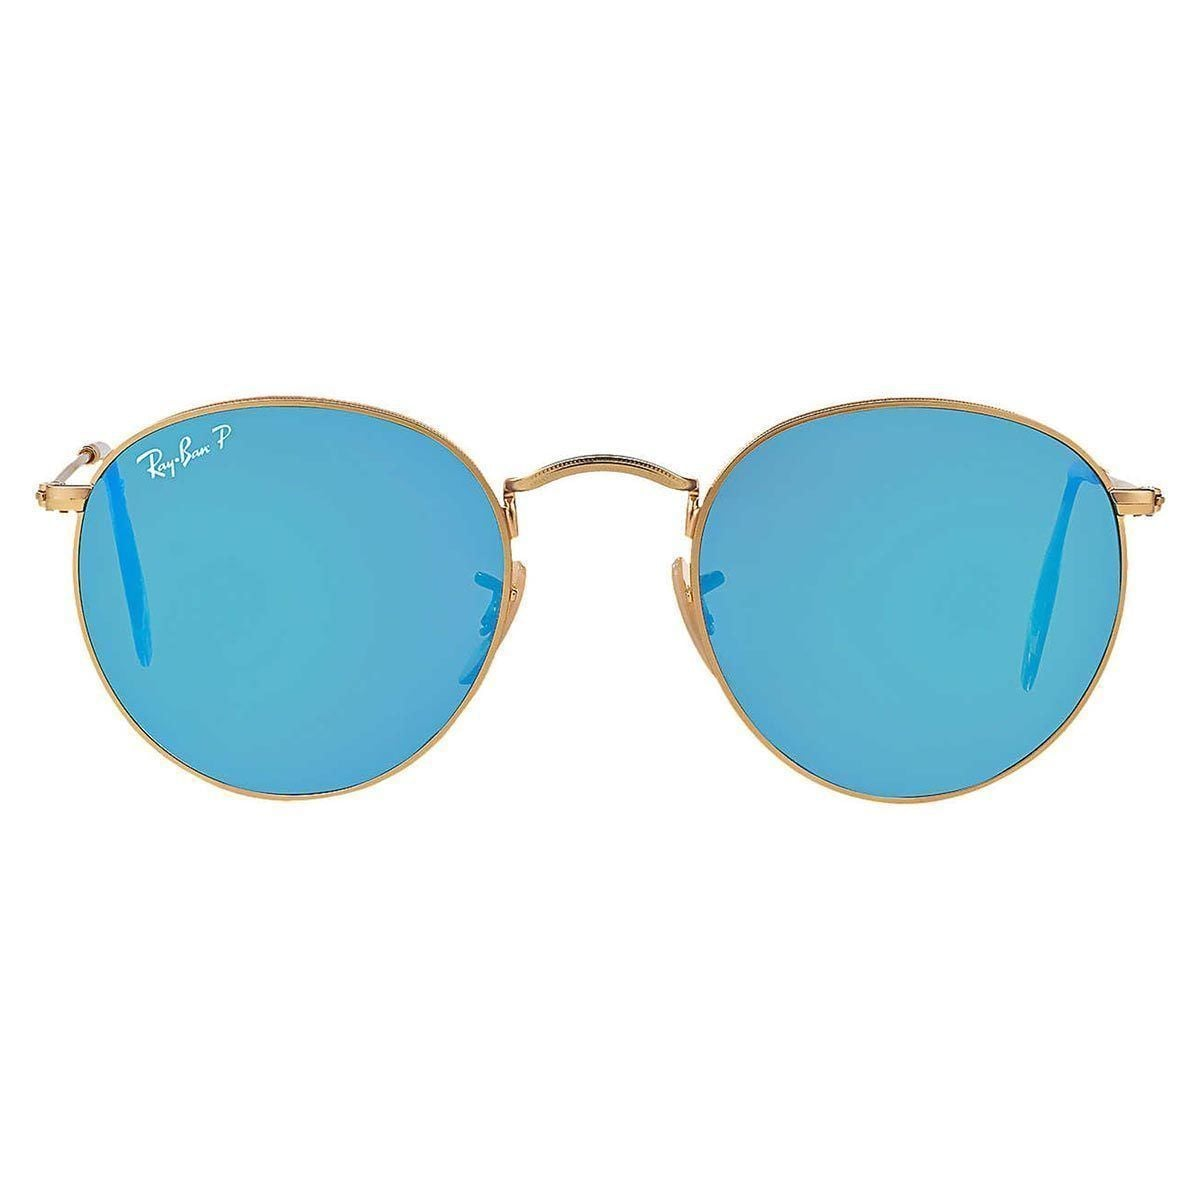 da8fe139f Shop Ray-Ban RB3447 112/4L Unisex Round Gold Frame Polarized Blue Flash  Lens Sunglasses - Free Shipping Today - Overstock - 15002896